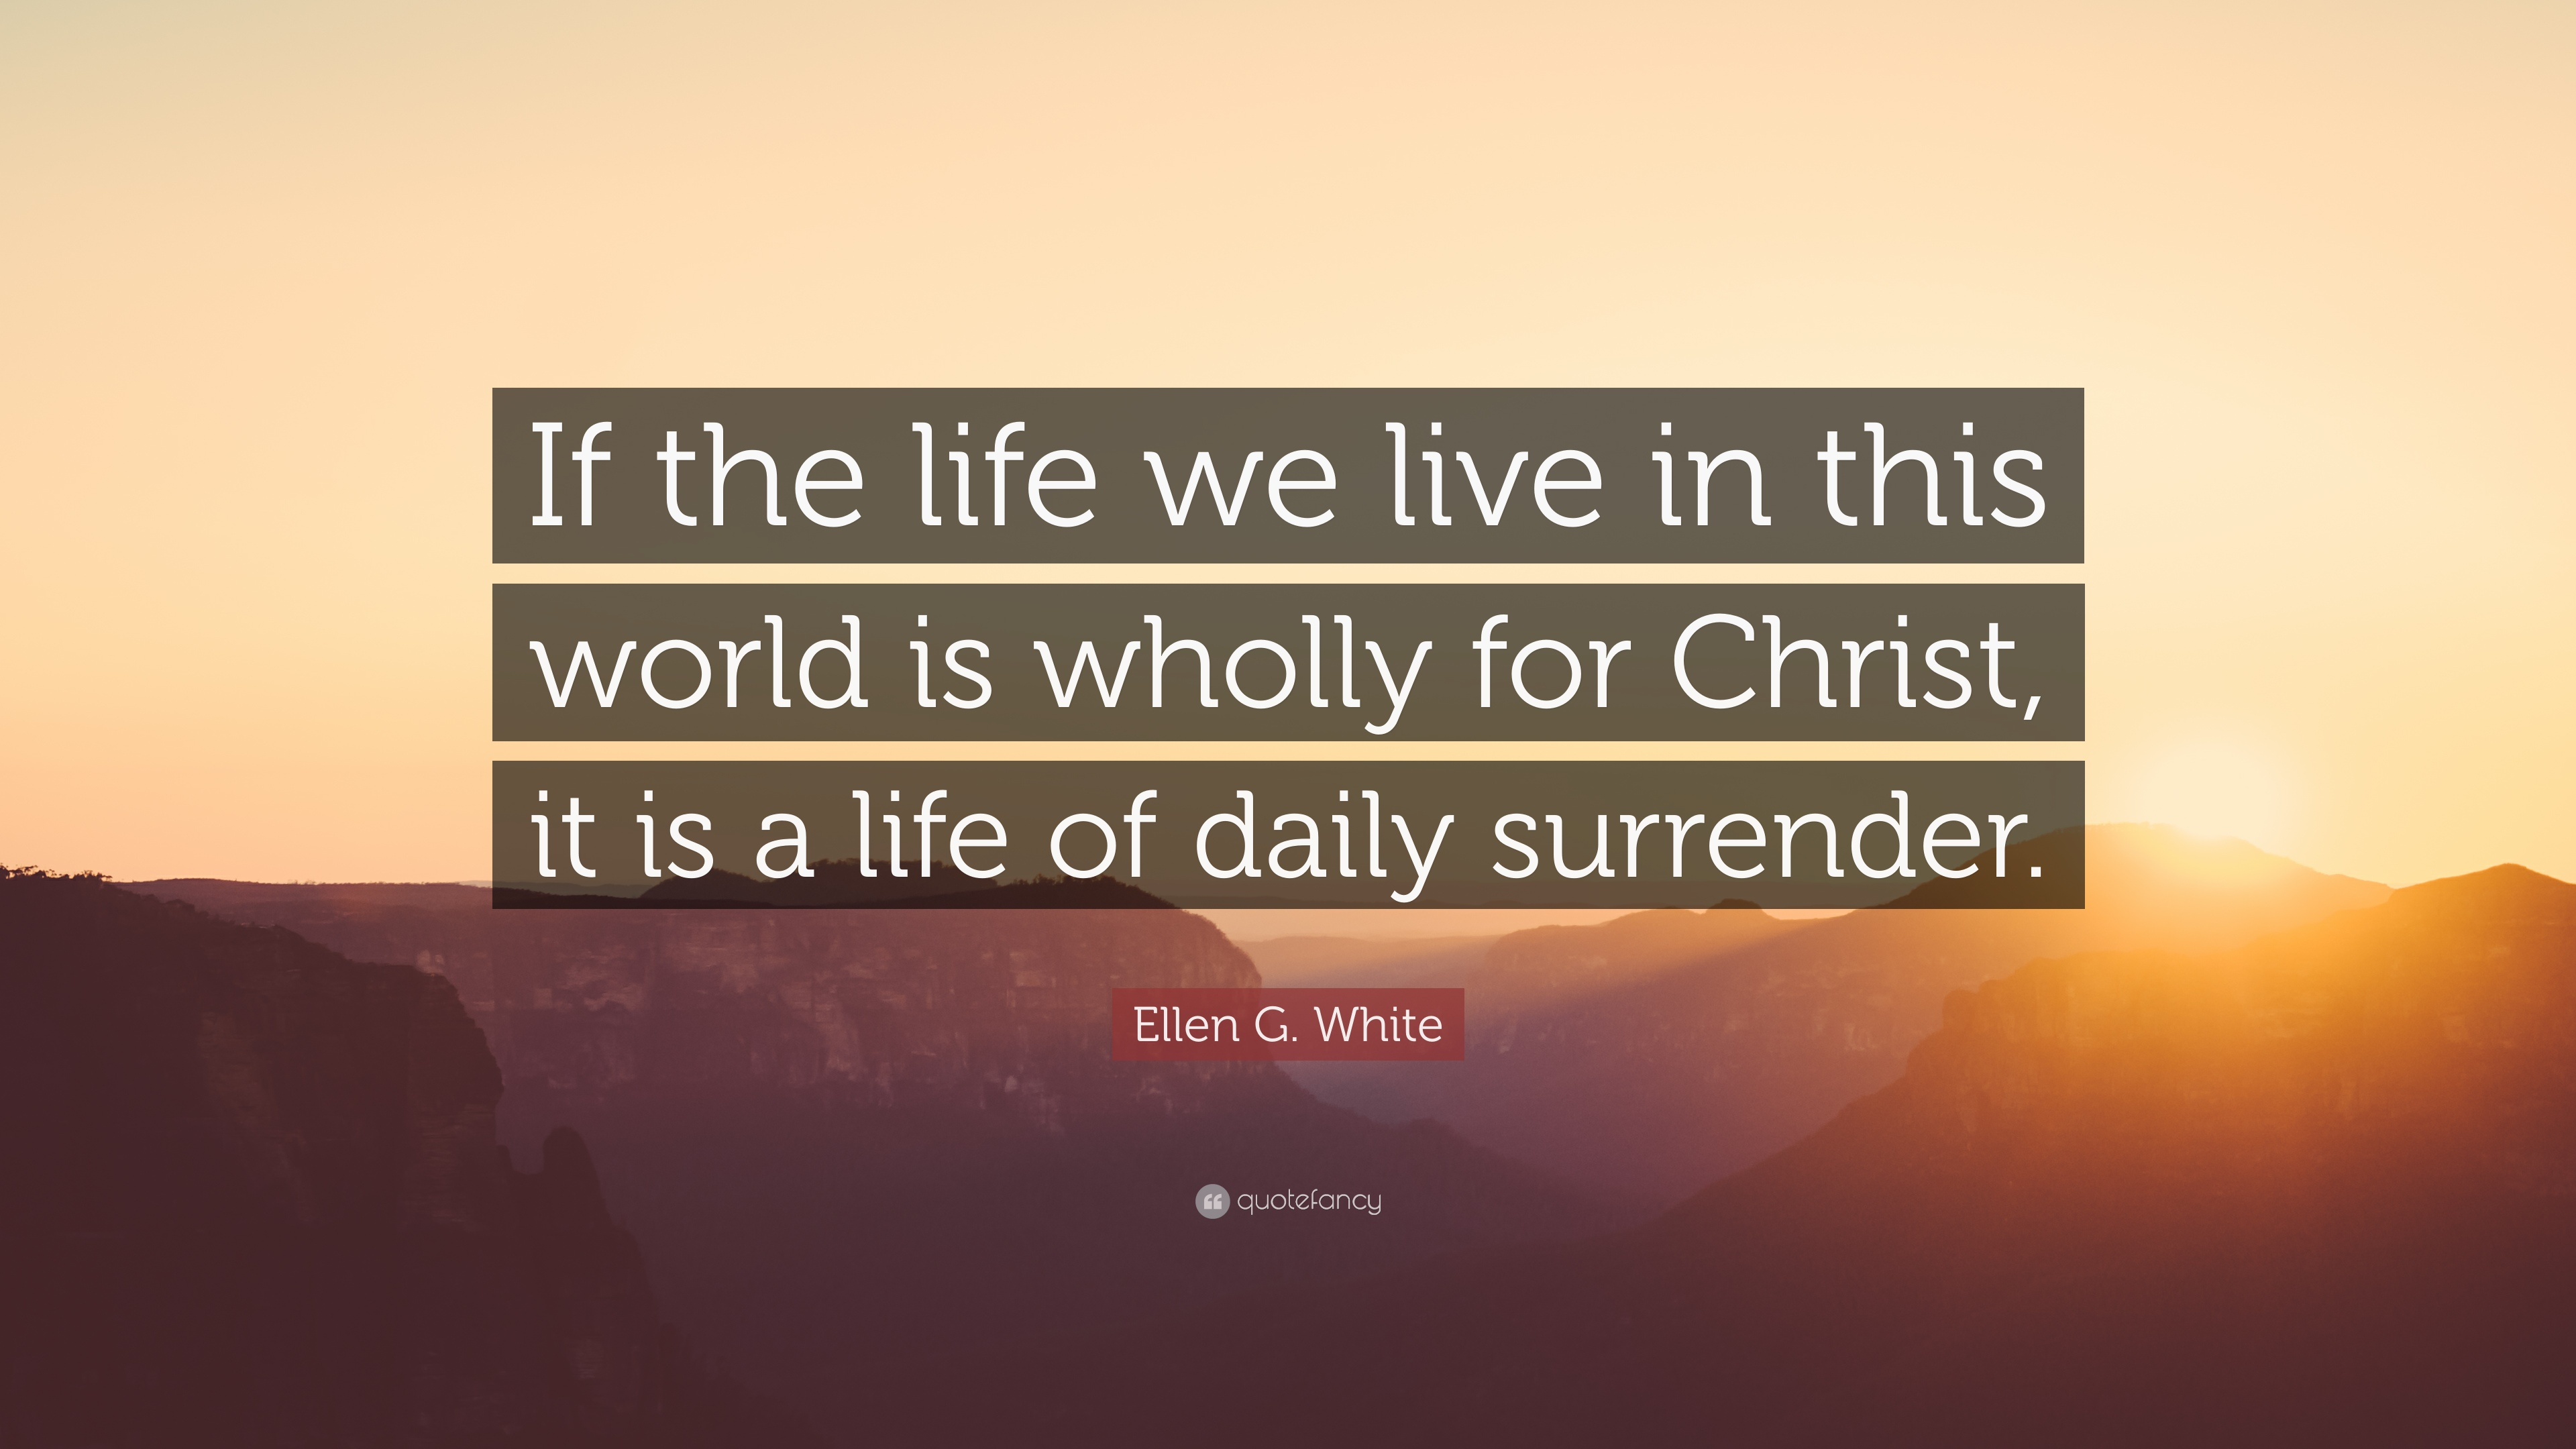 Ellen g white quote if the life we live in this world is wholly ellen g white quote if the life we live in this world is altavistaventures Image collections